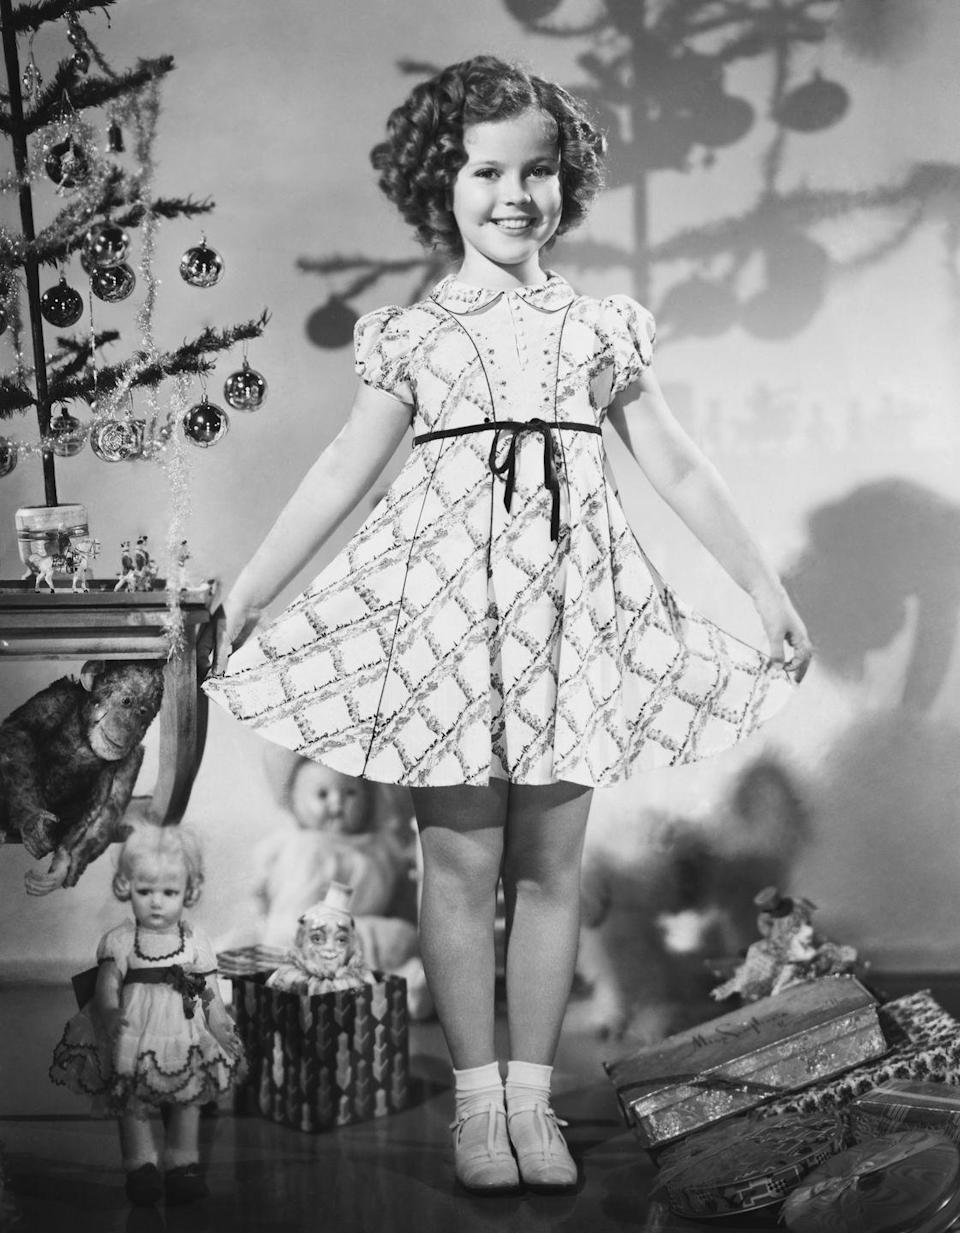 <p>The child actress strikes her classic pose while surrounded by countless toys and presents during the holidays. There's no denying she worked hard for those gifts!</p>